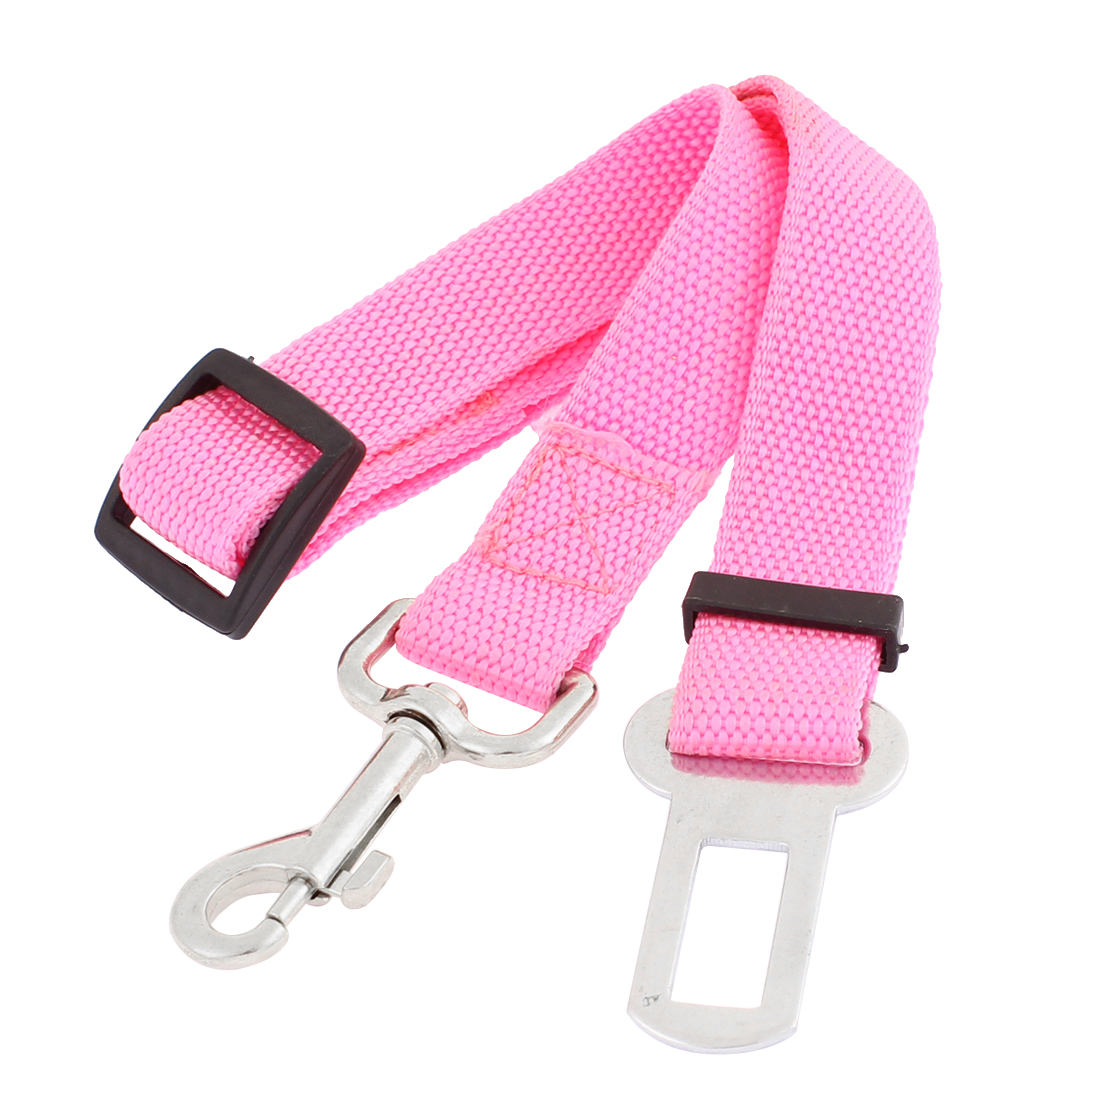 Pet Cat Dog Safety Car Vehicle Seatbelt Adjustable Harness Leash Fuchsia